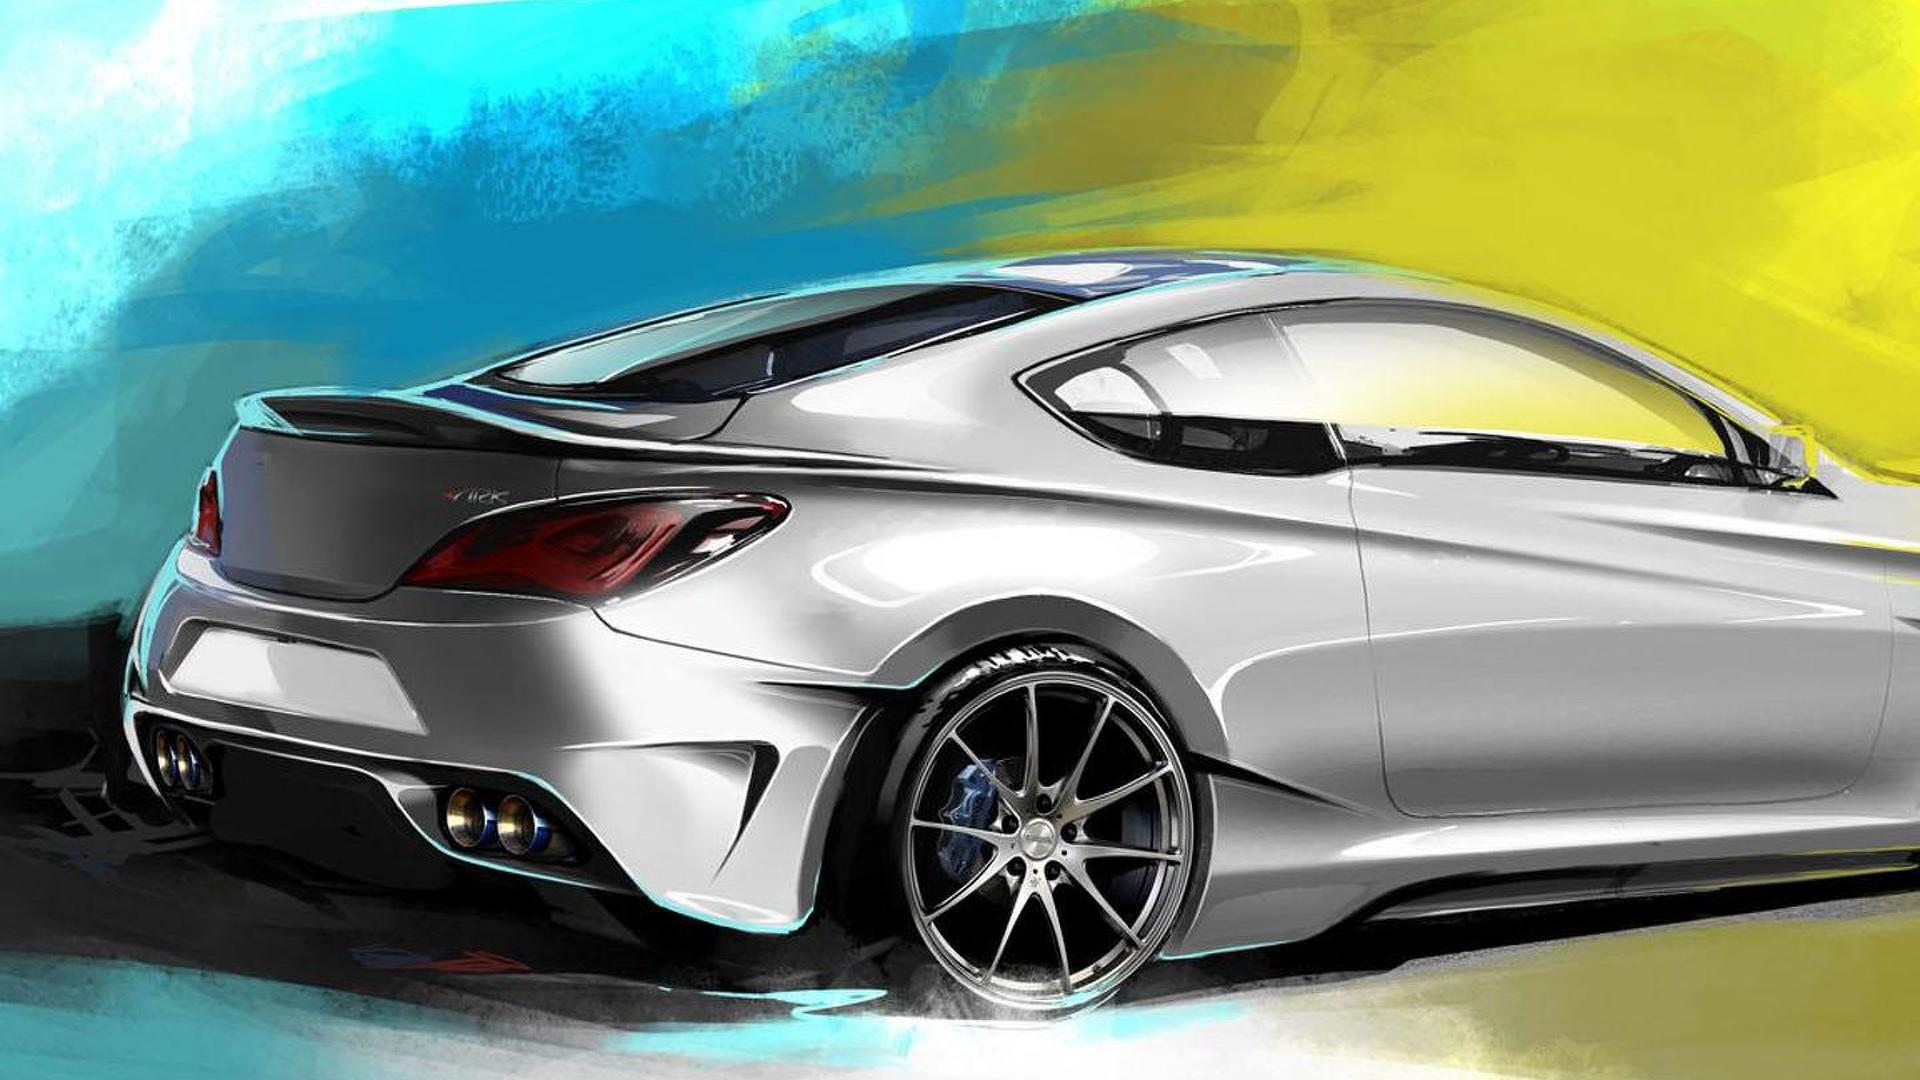 Hyundai Legato Concept announced for SEMA, based on the Genesis Coupe